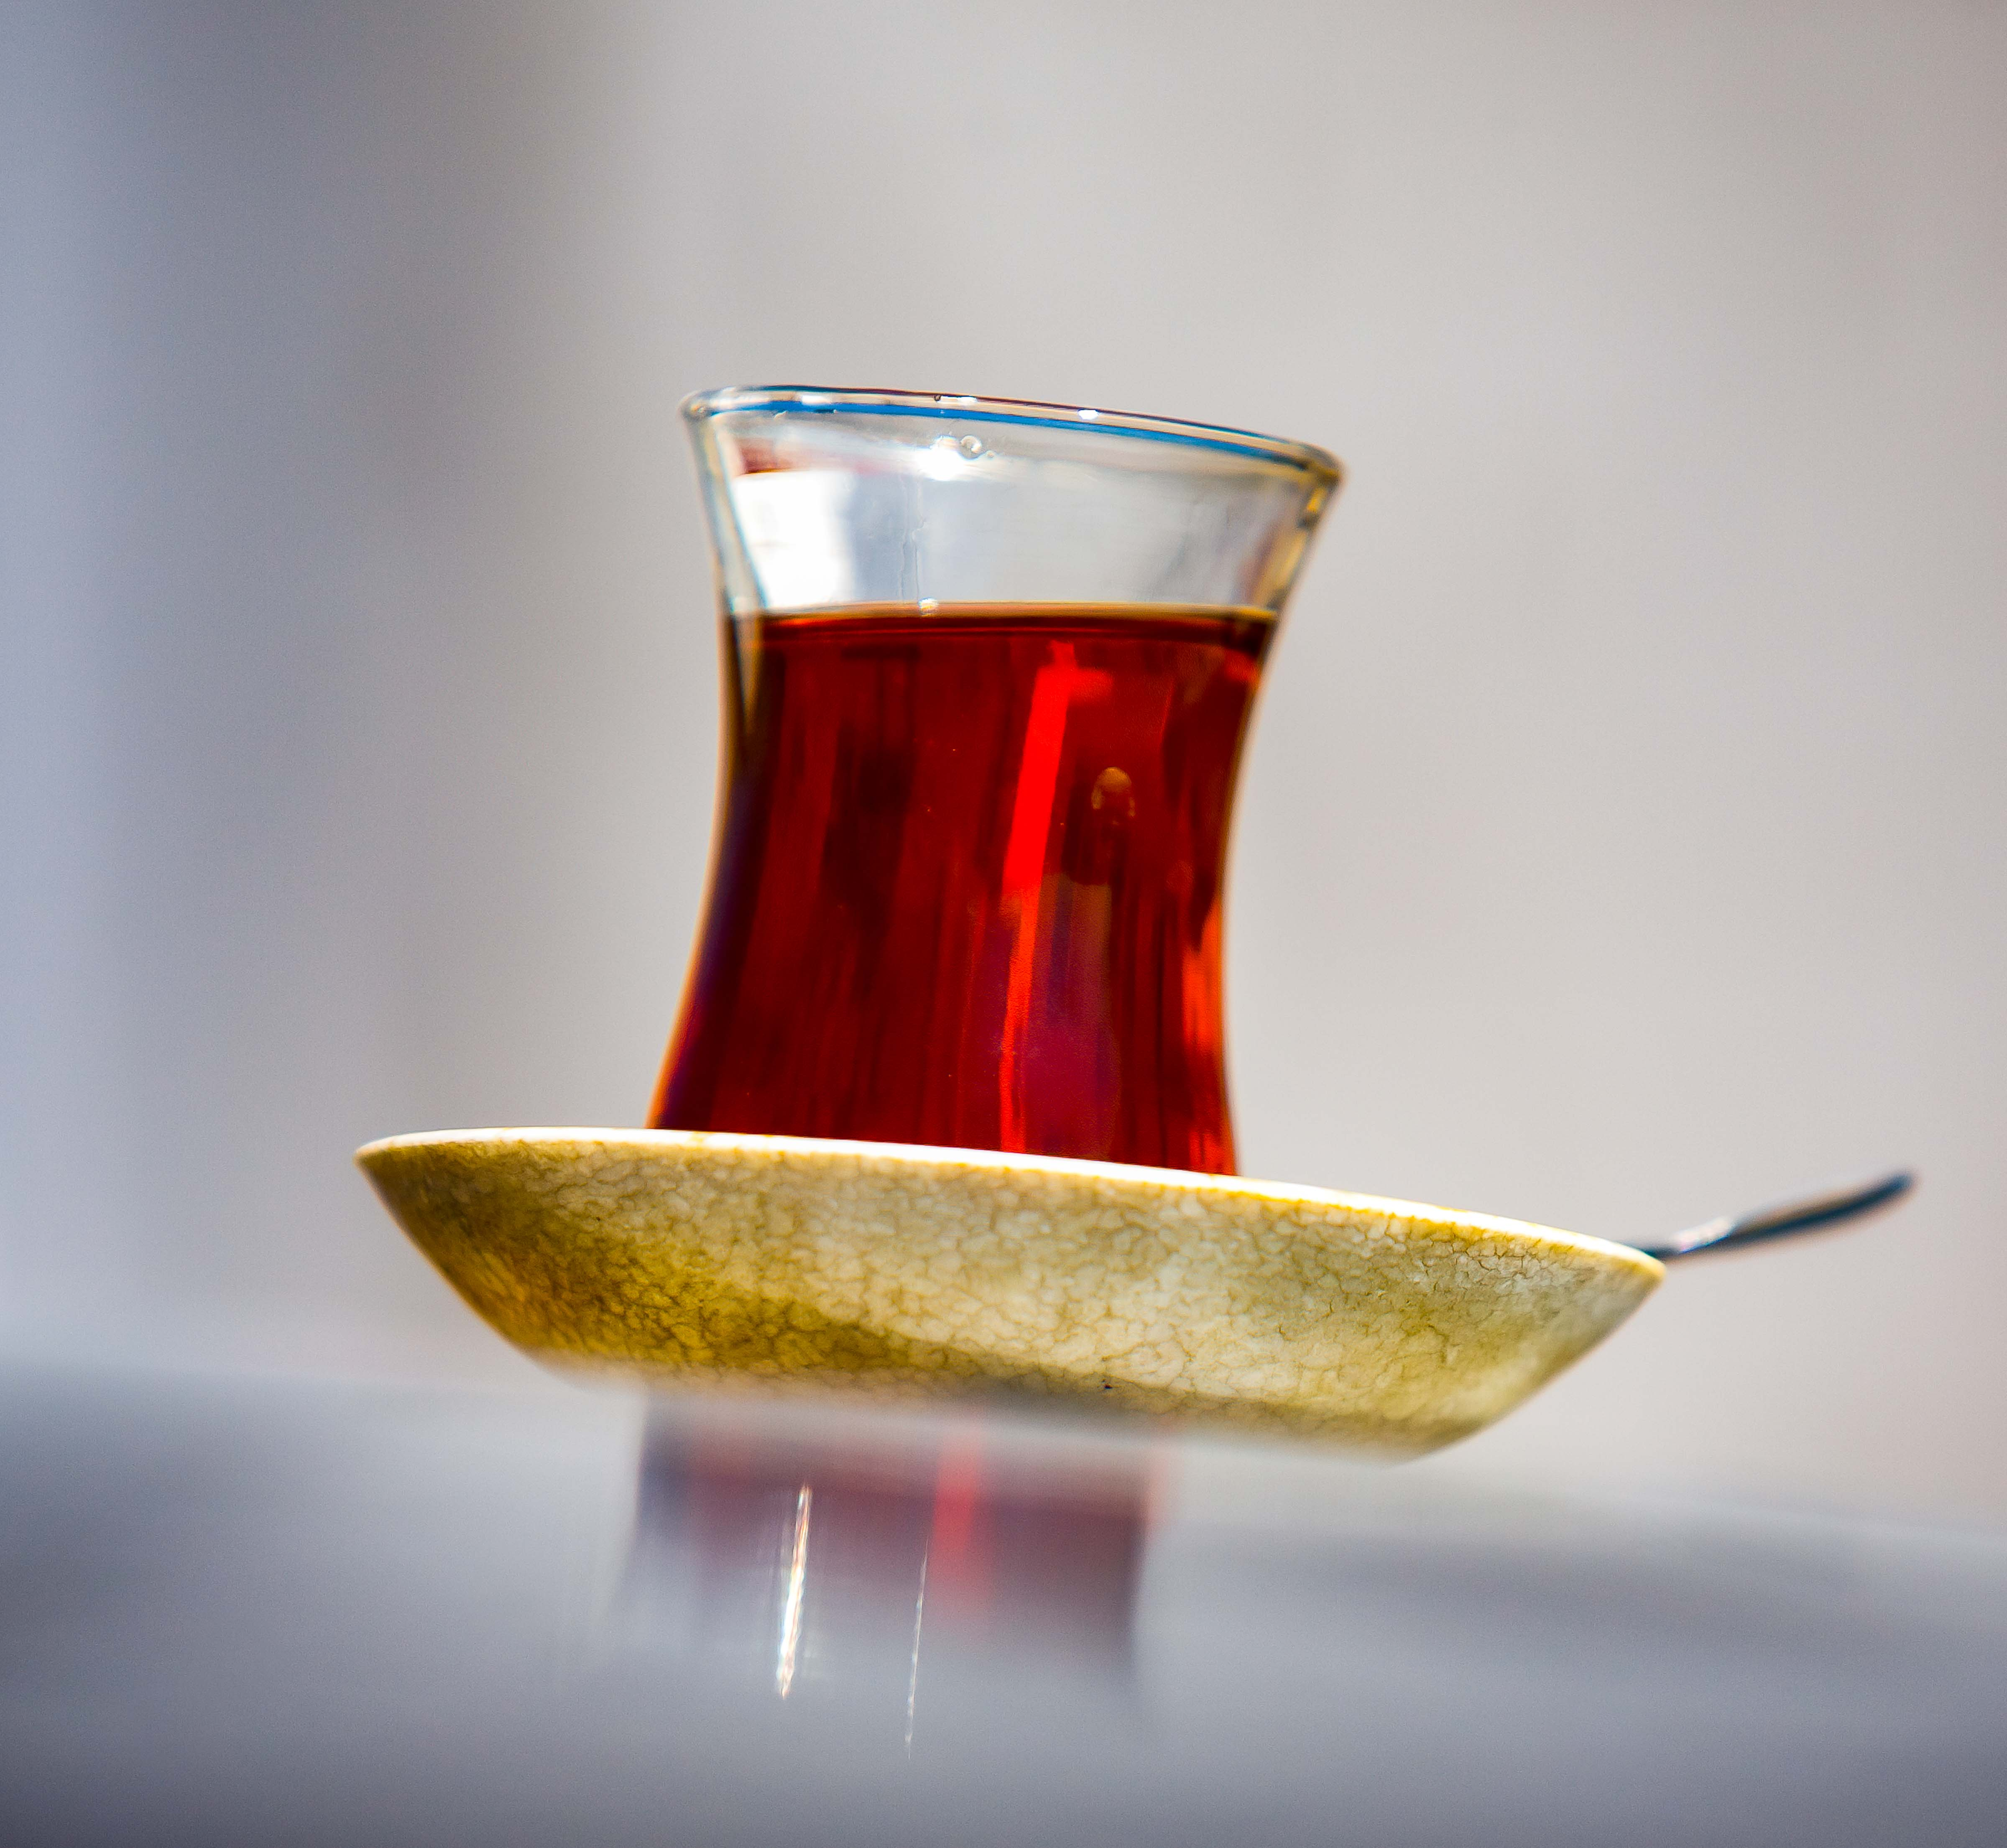 Turkey, Balikesir Province, Tea Offered At Gas Station, 2010, IMG 9925